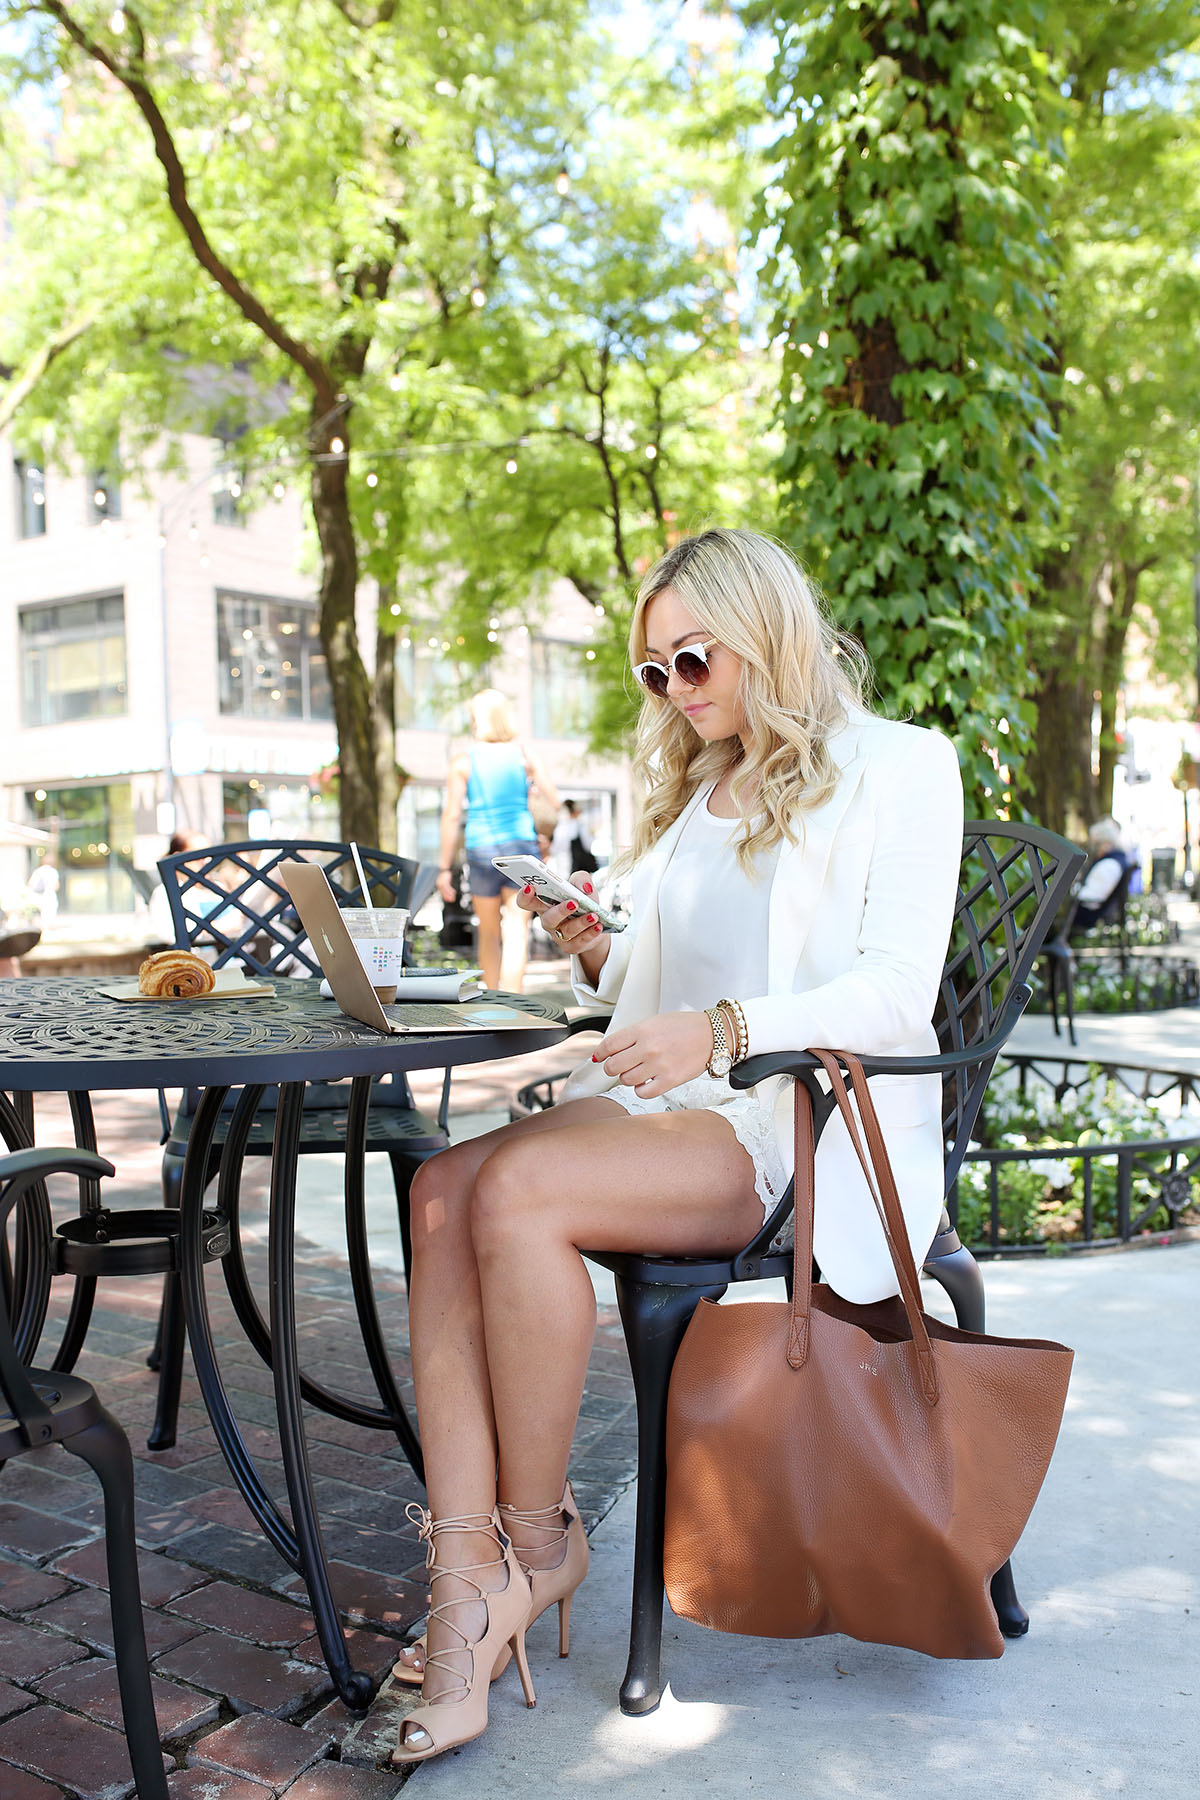 Bows & Sequins working outside in the Gold Coast in Chicago at Mariano Park wearing a white short suit and lace-up pumps.